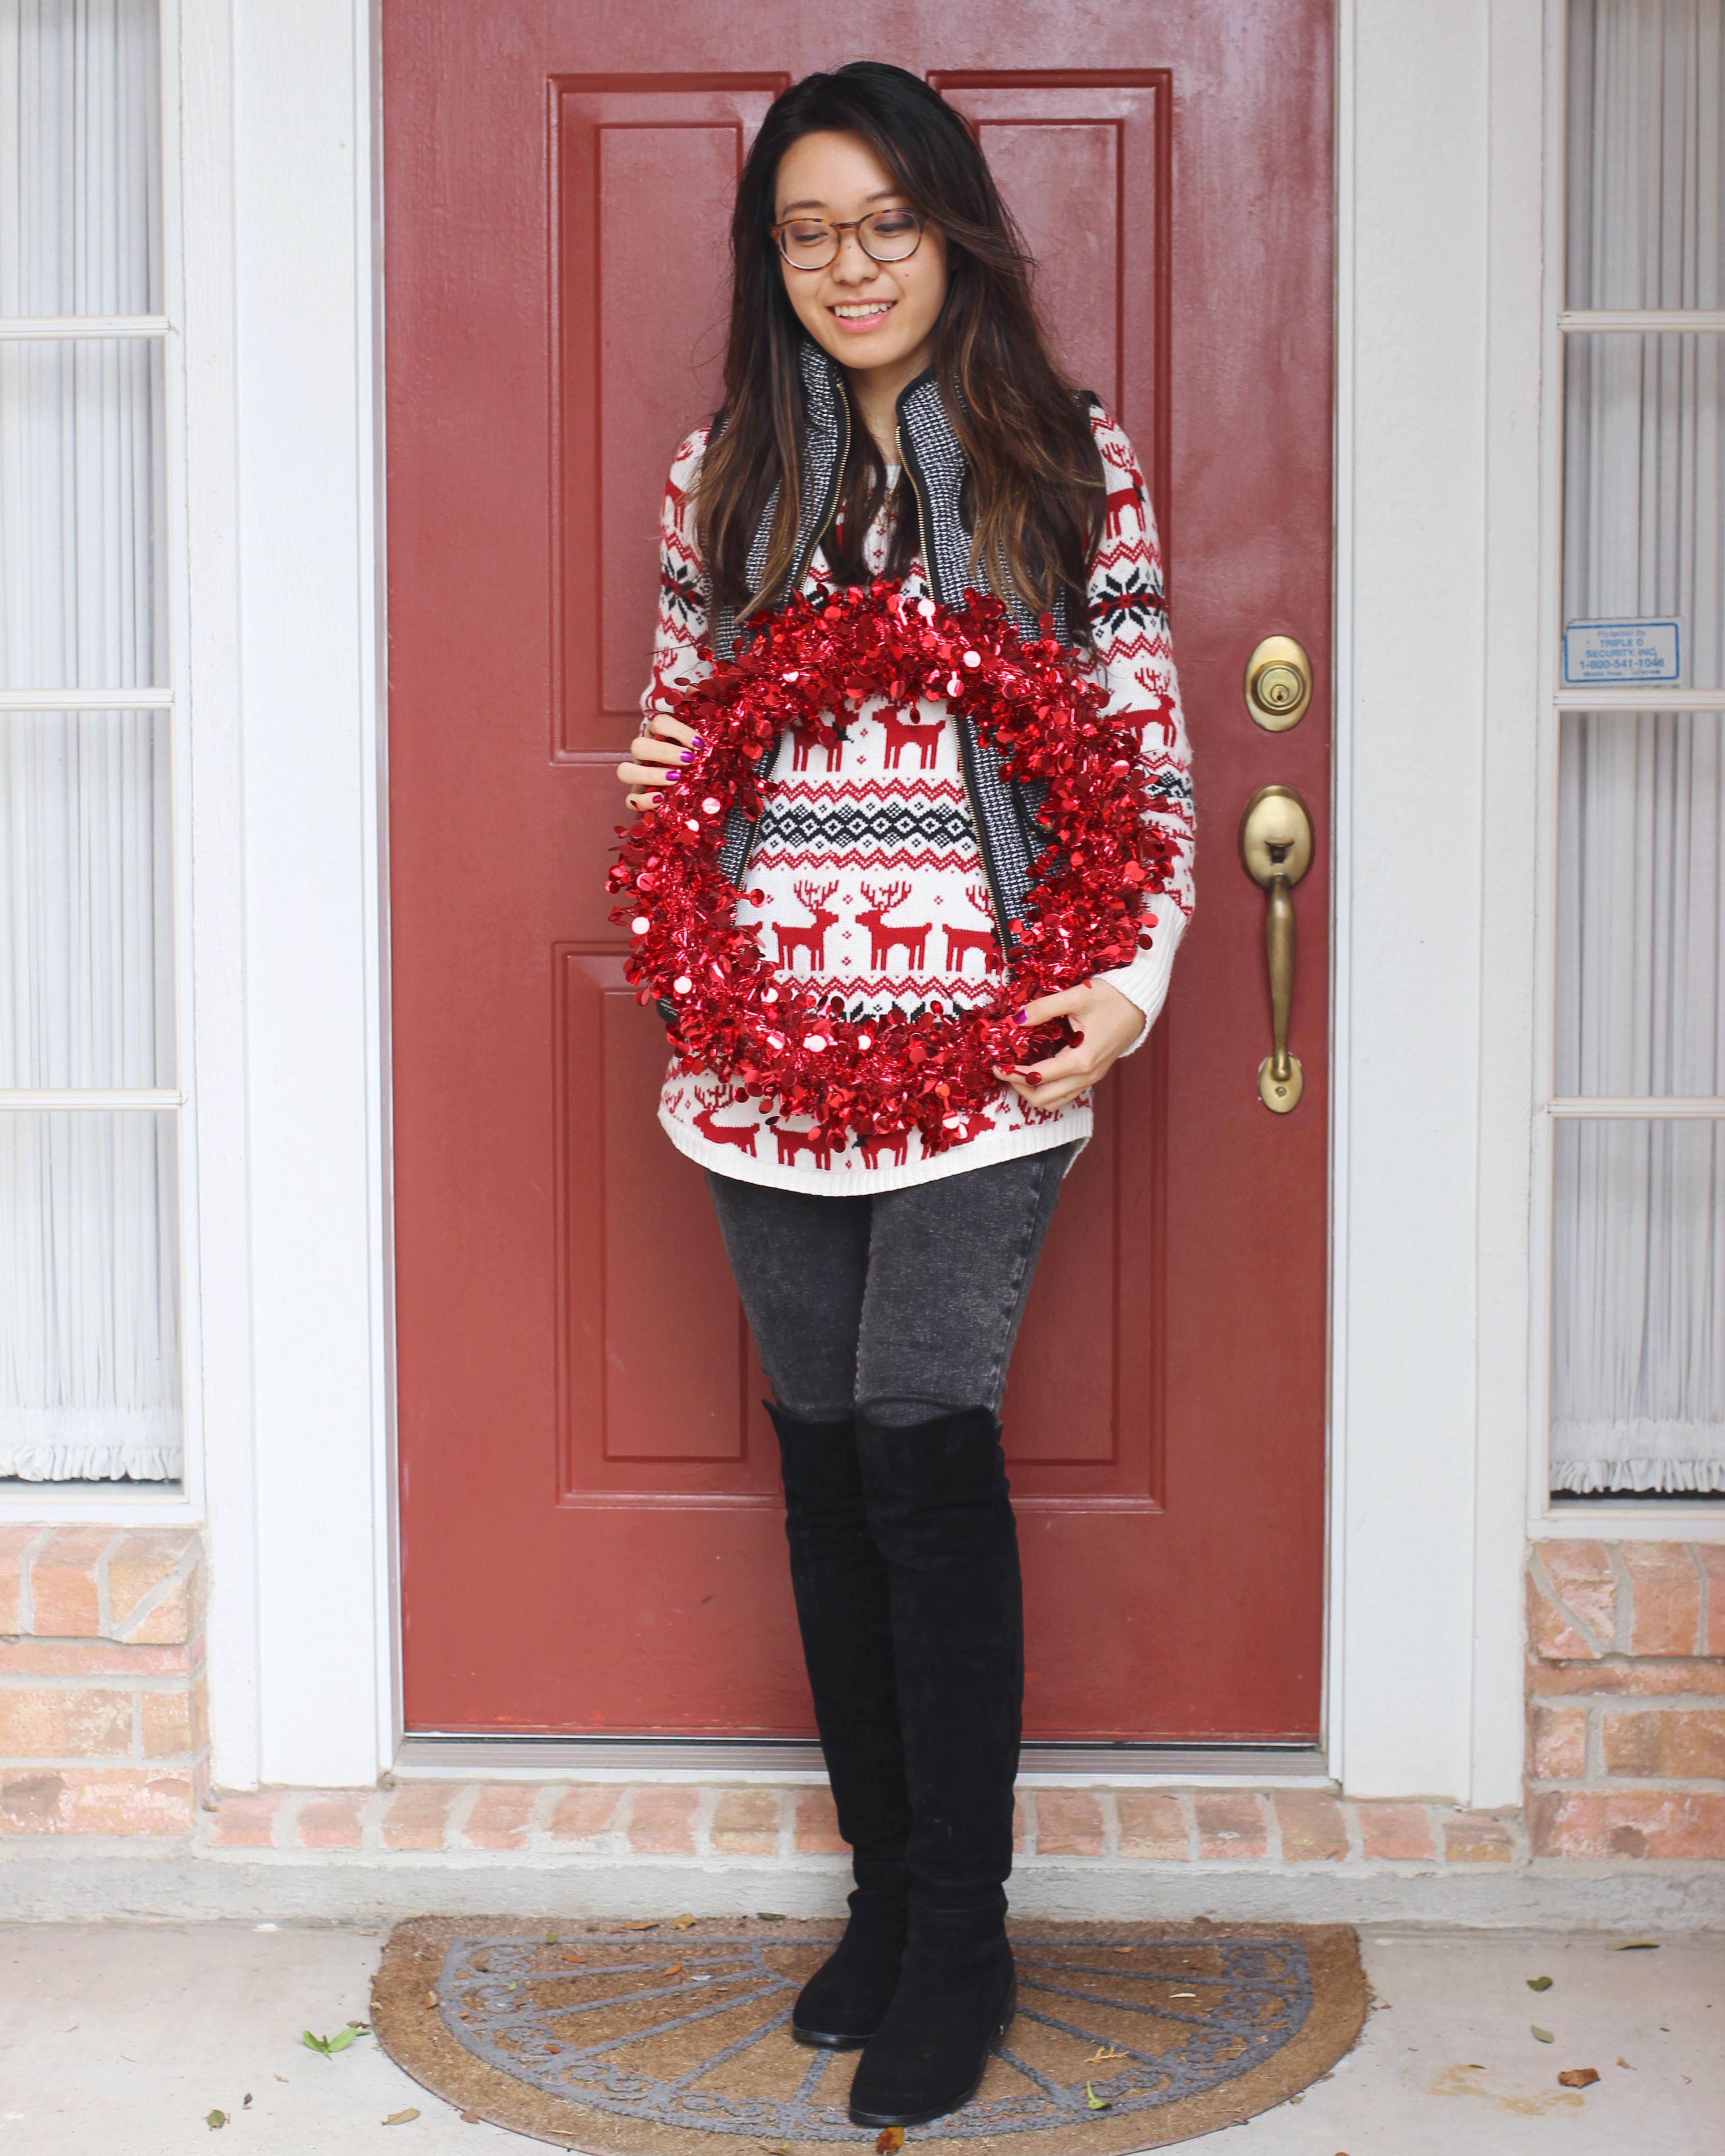 Reindeer holiday sweater tunic from TJMaxx